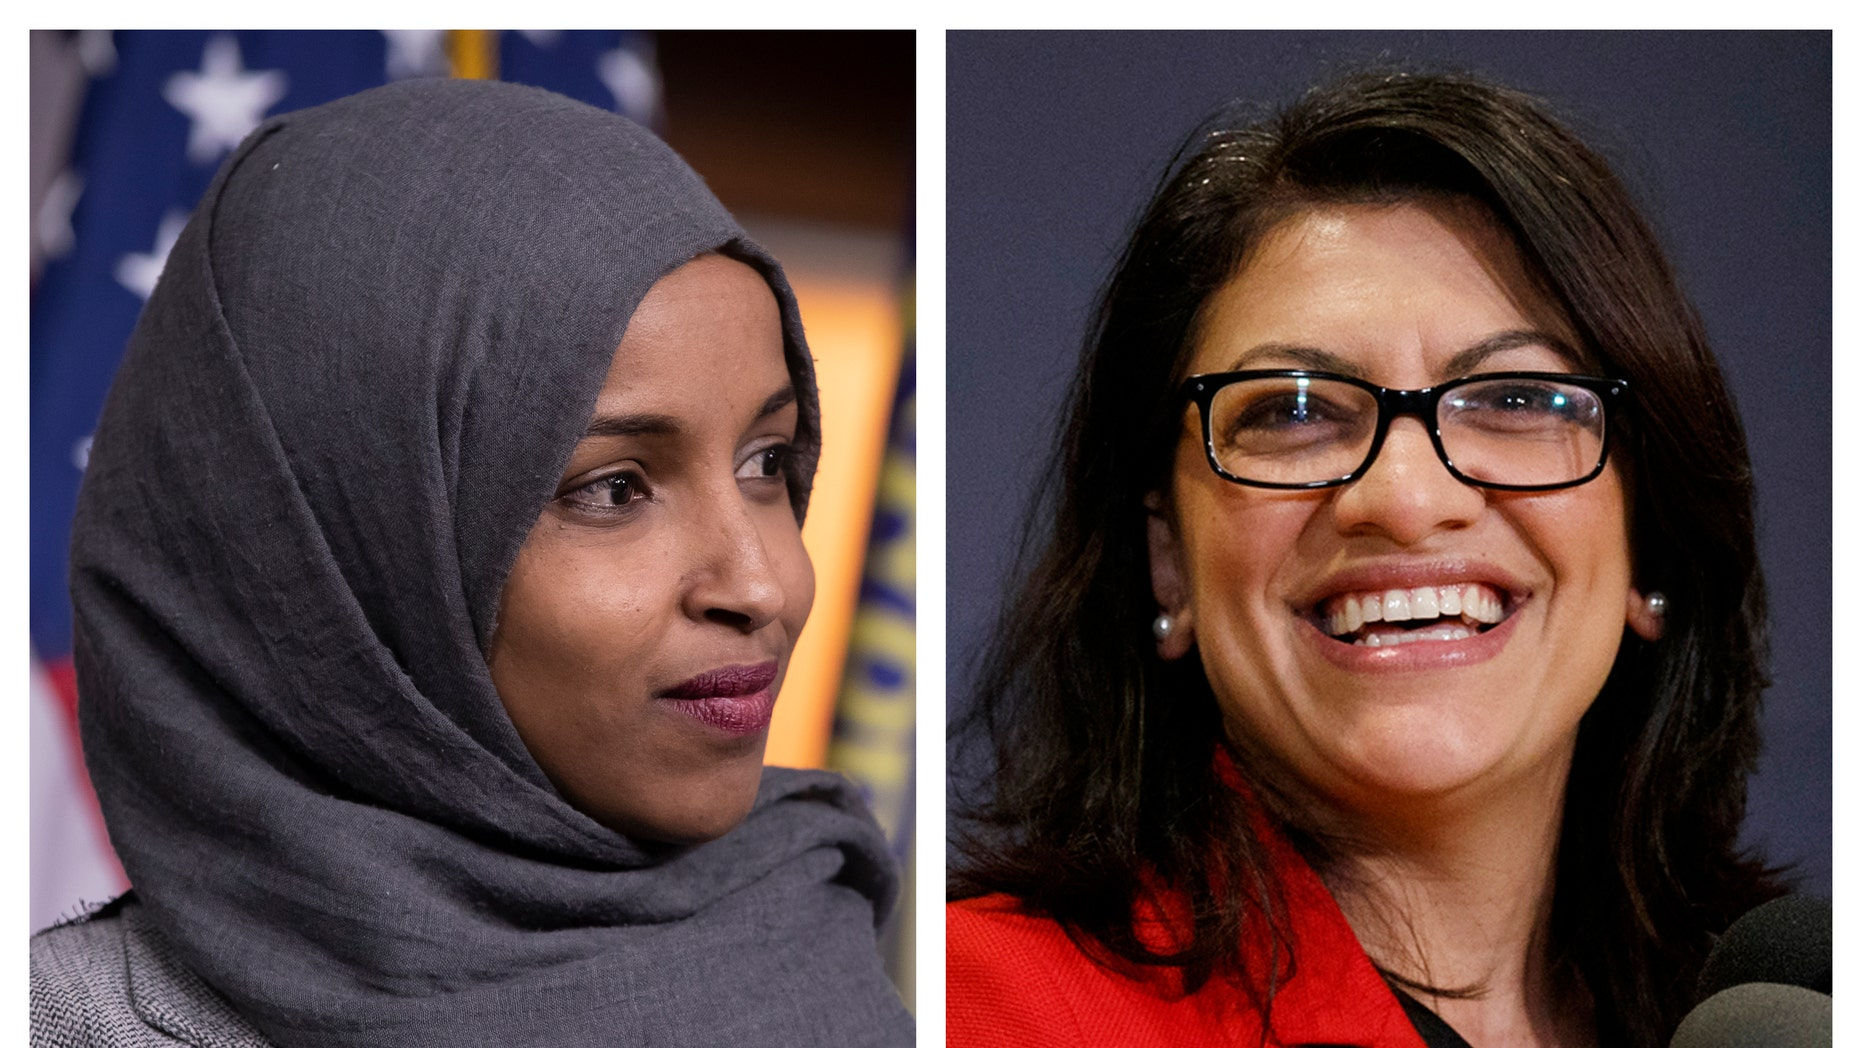 FILE - This combination of 2018 photos shows Reps.-elect Ilhan Omar, D-Minn., left, and Rashida Tlaib, D-Mich., in Washington. (AP Photo/Carolyn Kaster, File)